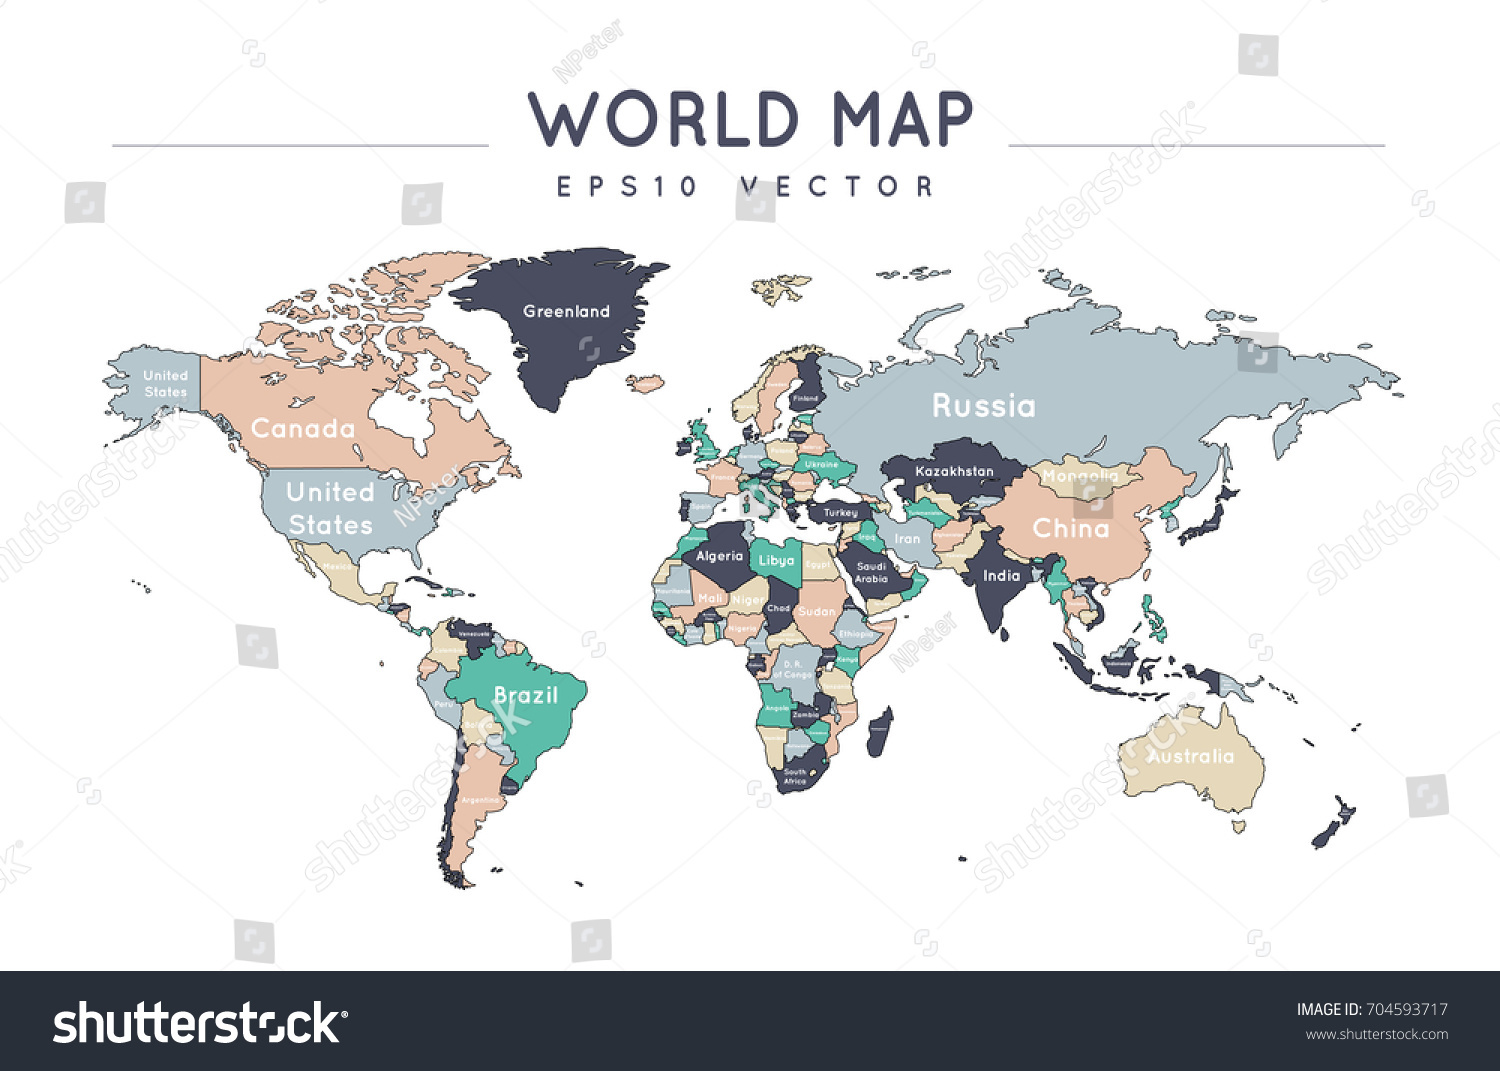 Colorful political world map name borders stock vector 704593717 colorful political world map with the name and borders of the countries gumiabroncs Images